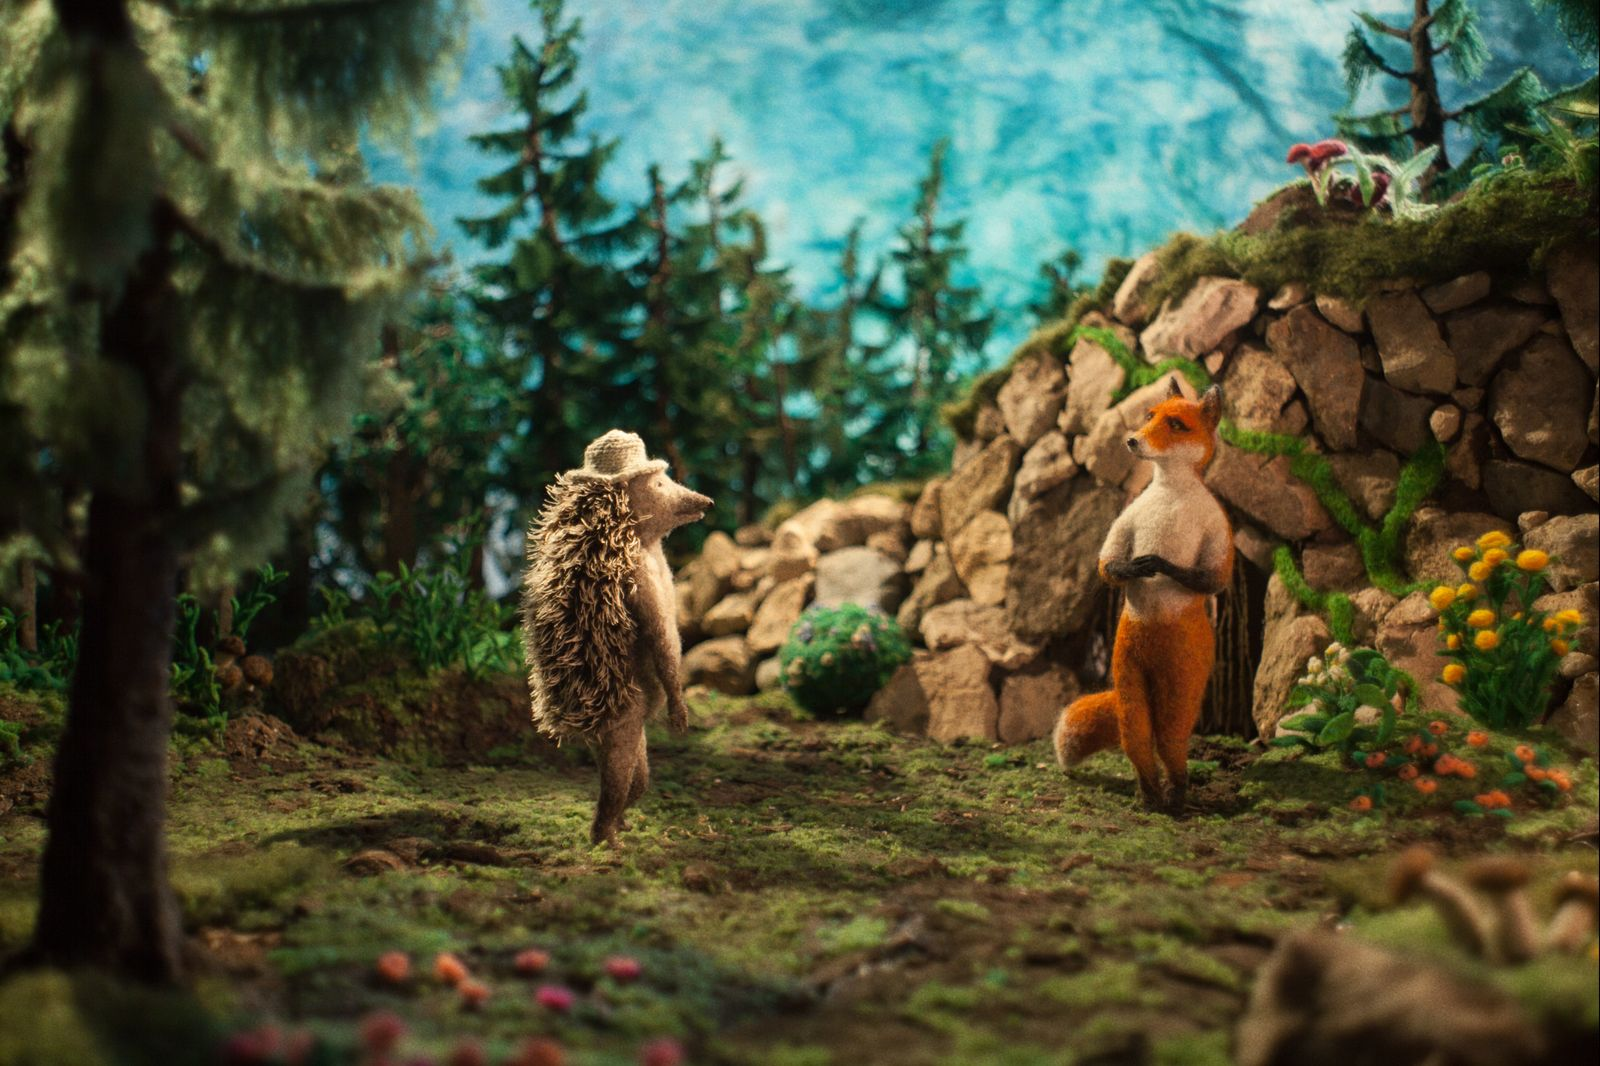 Hedgehog's Home to Premiere at Berlin International Film Festival